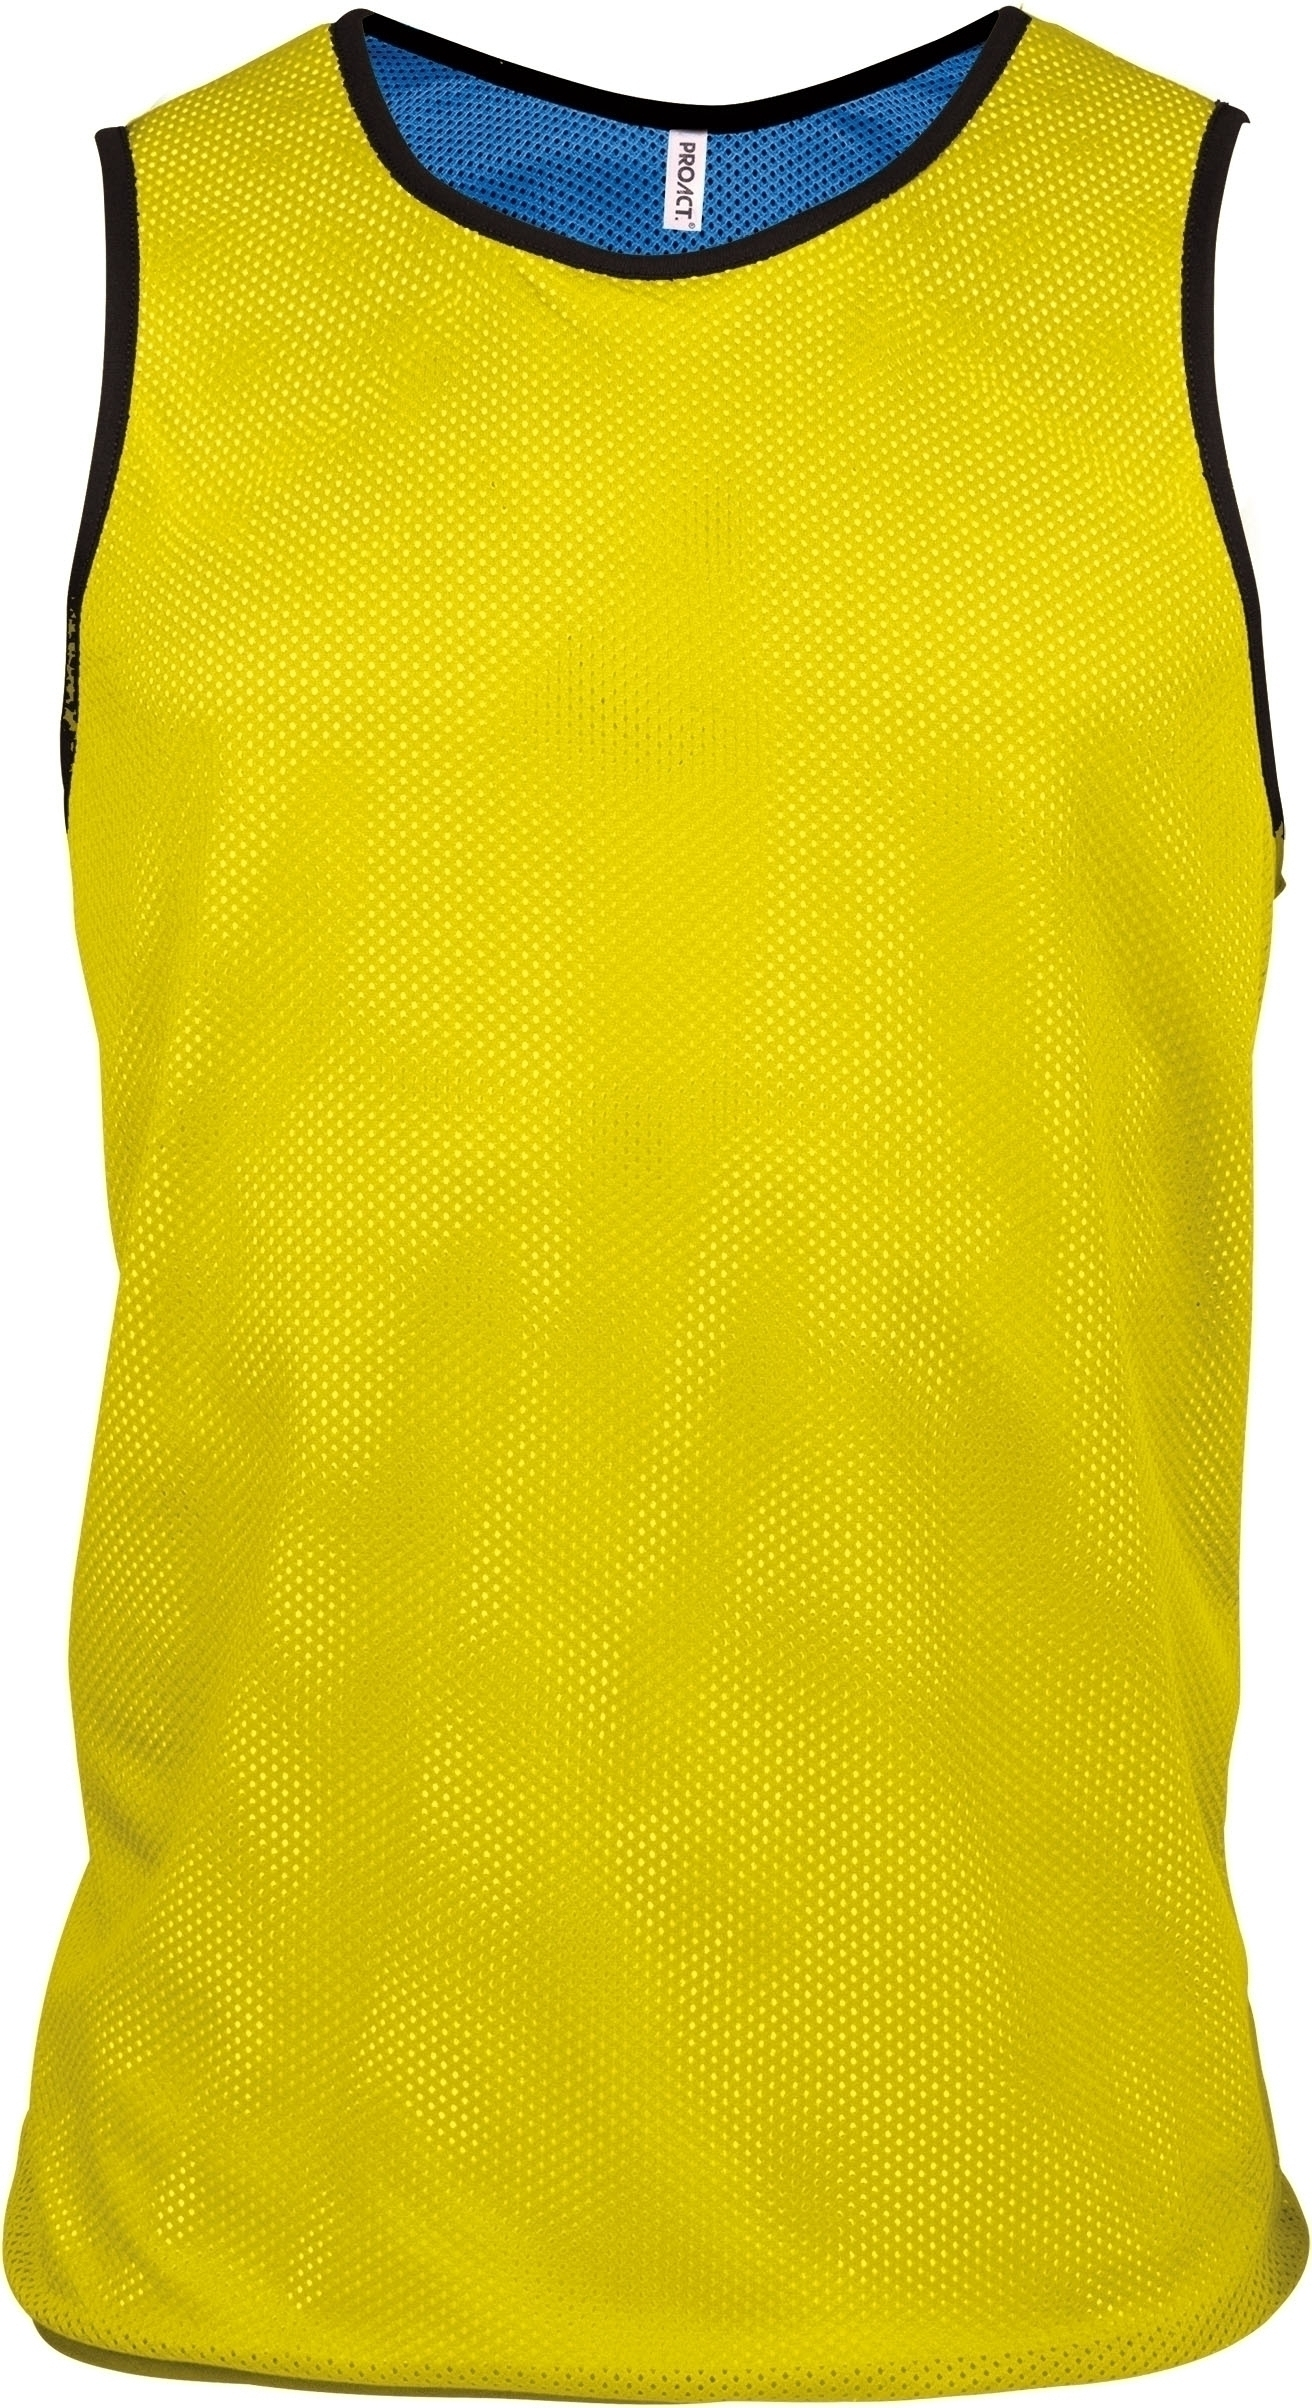 CHASUBLE RÉVERSIBLE MULTISPORTS ADULTE ET ENFANT Fluorescent Yellow / Sporty Royal Blue Jaune